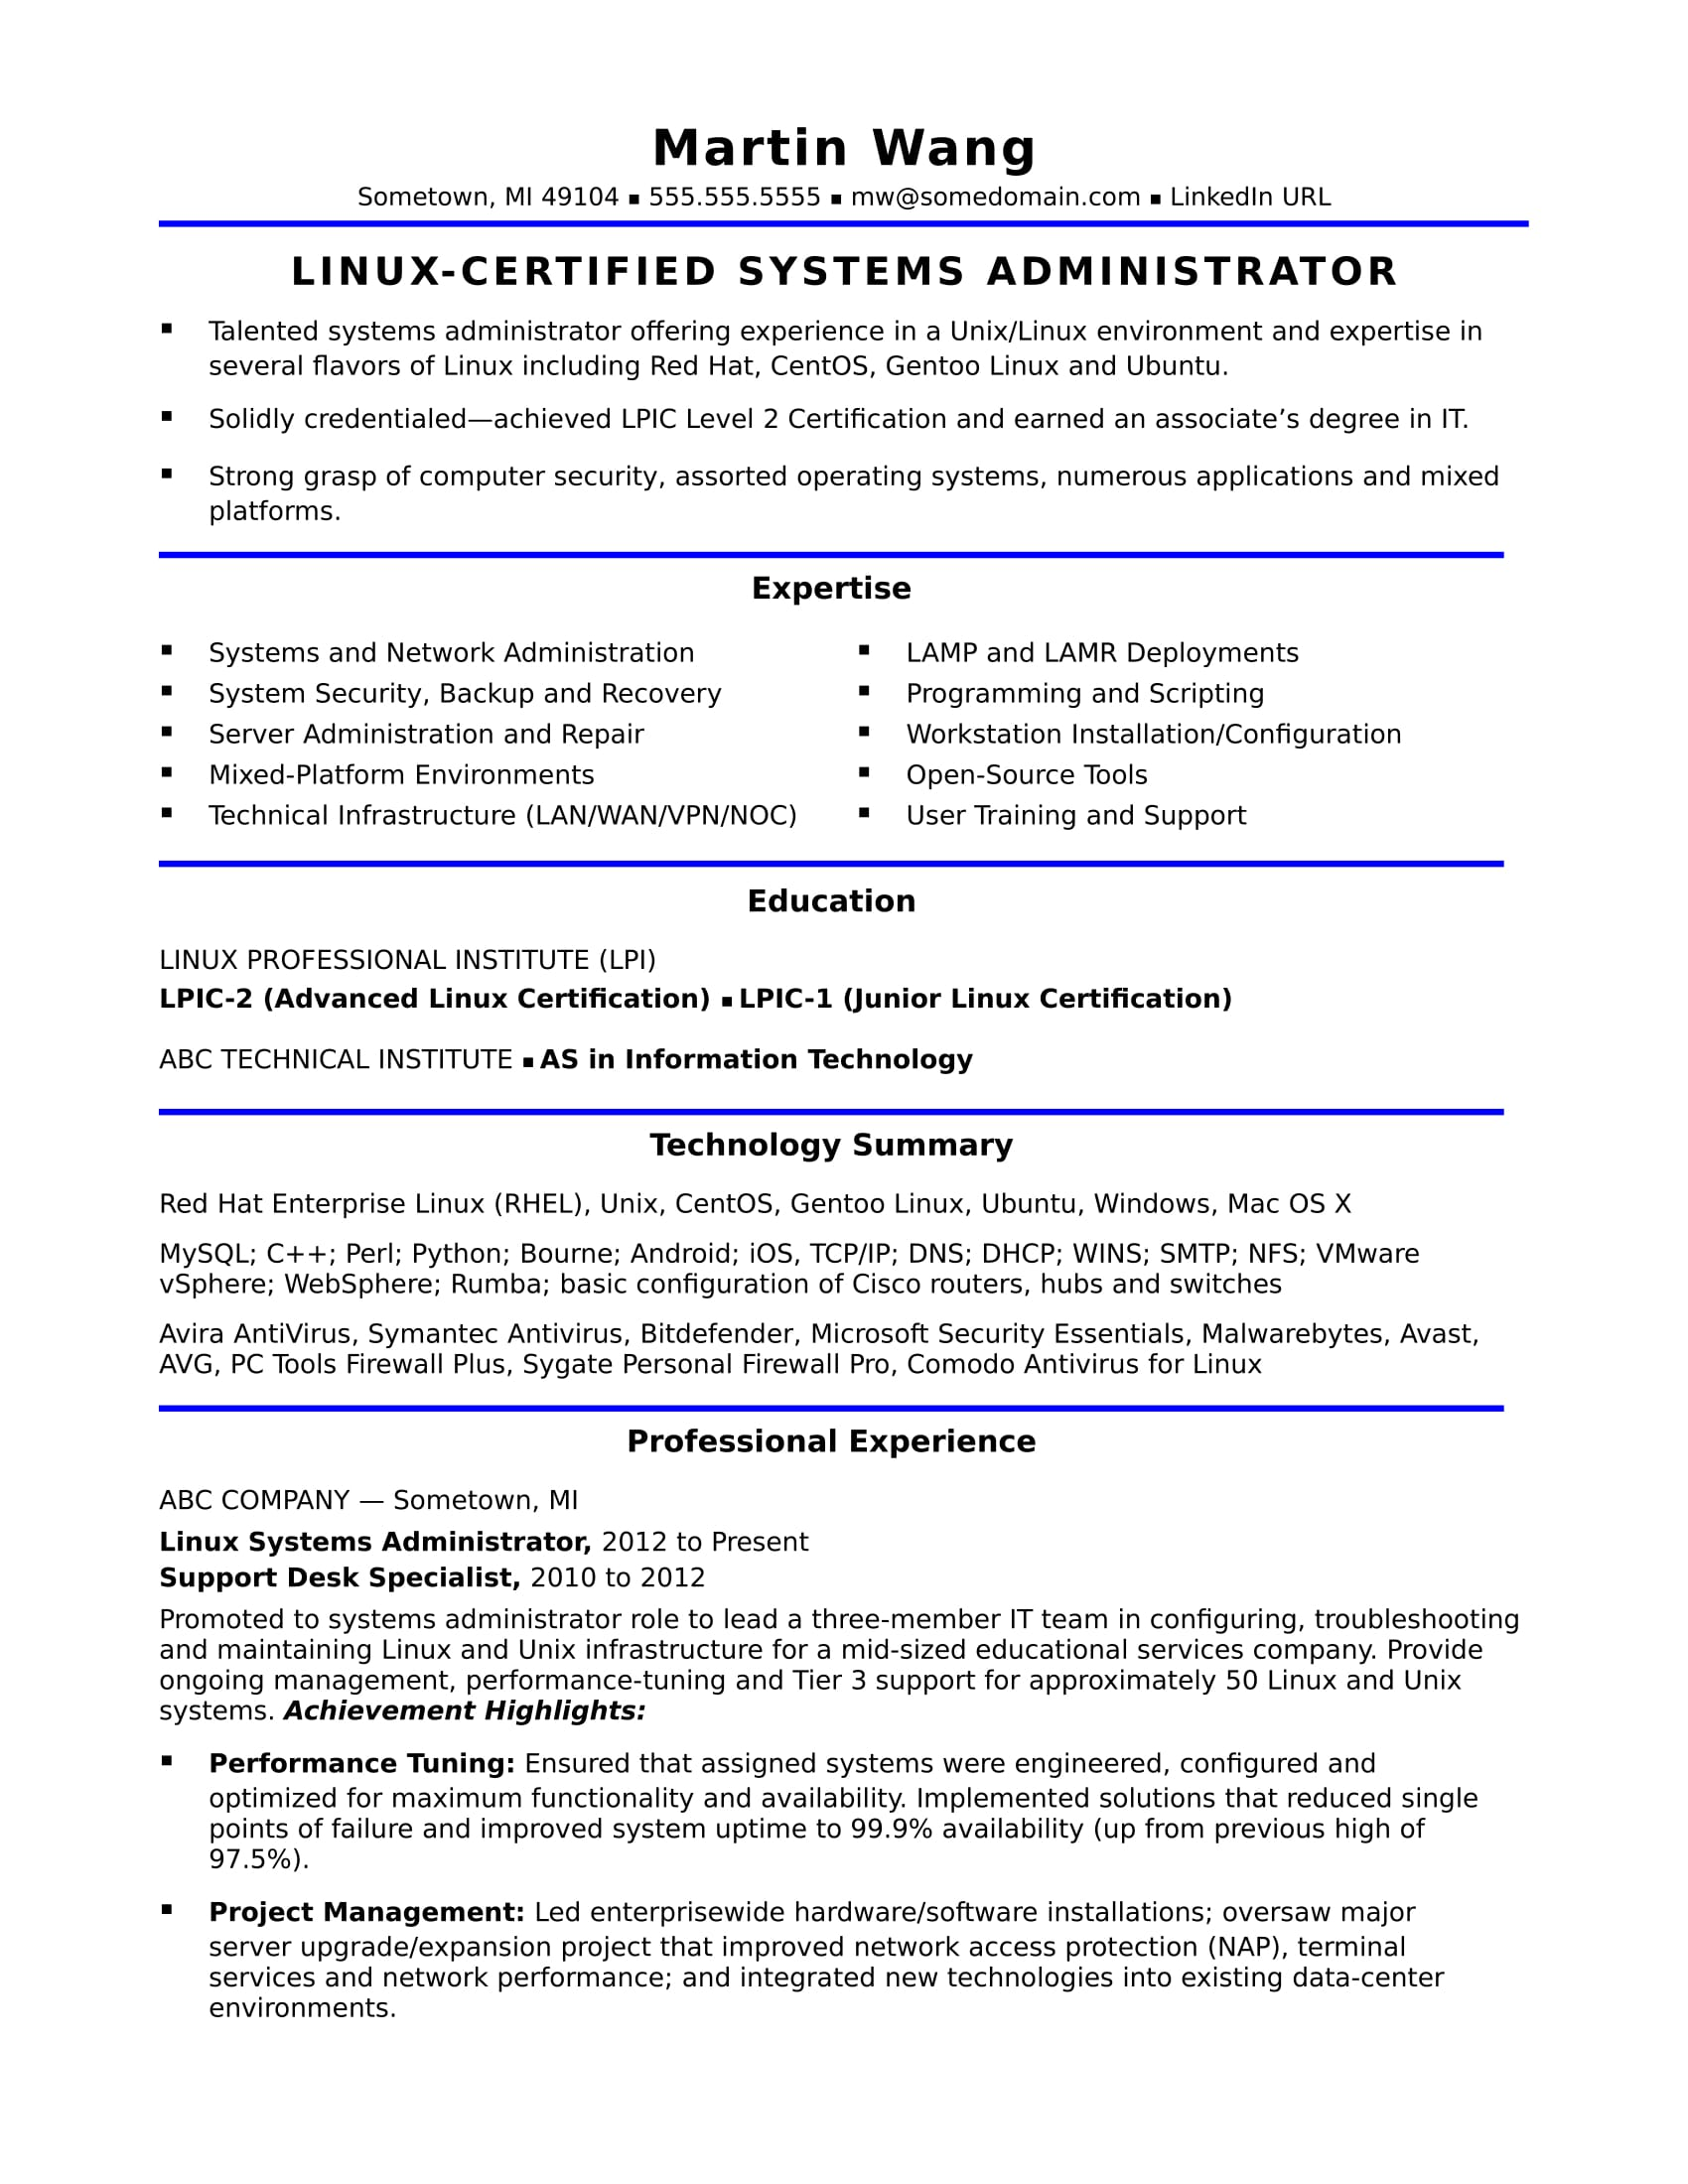 sample resume for midlevel systems administrator monster system gmat on collection Resume System Administrator Resume Sample Download